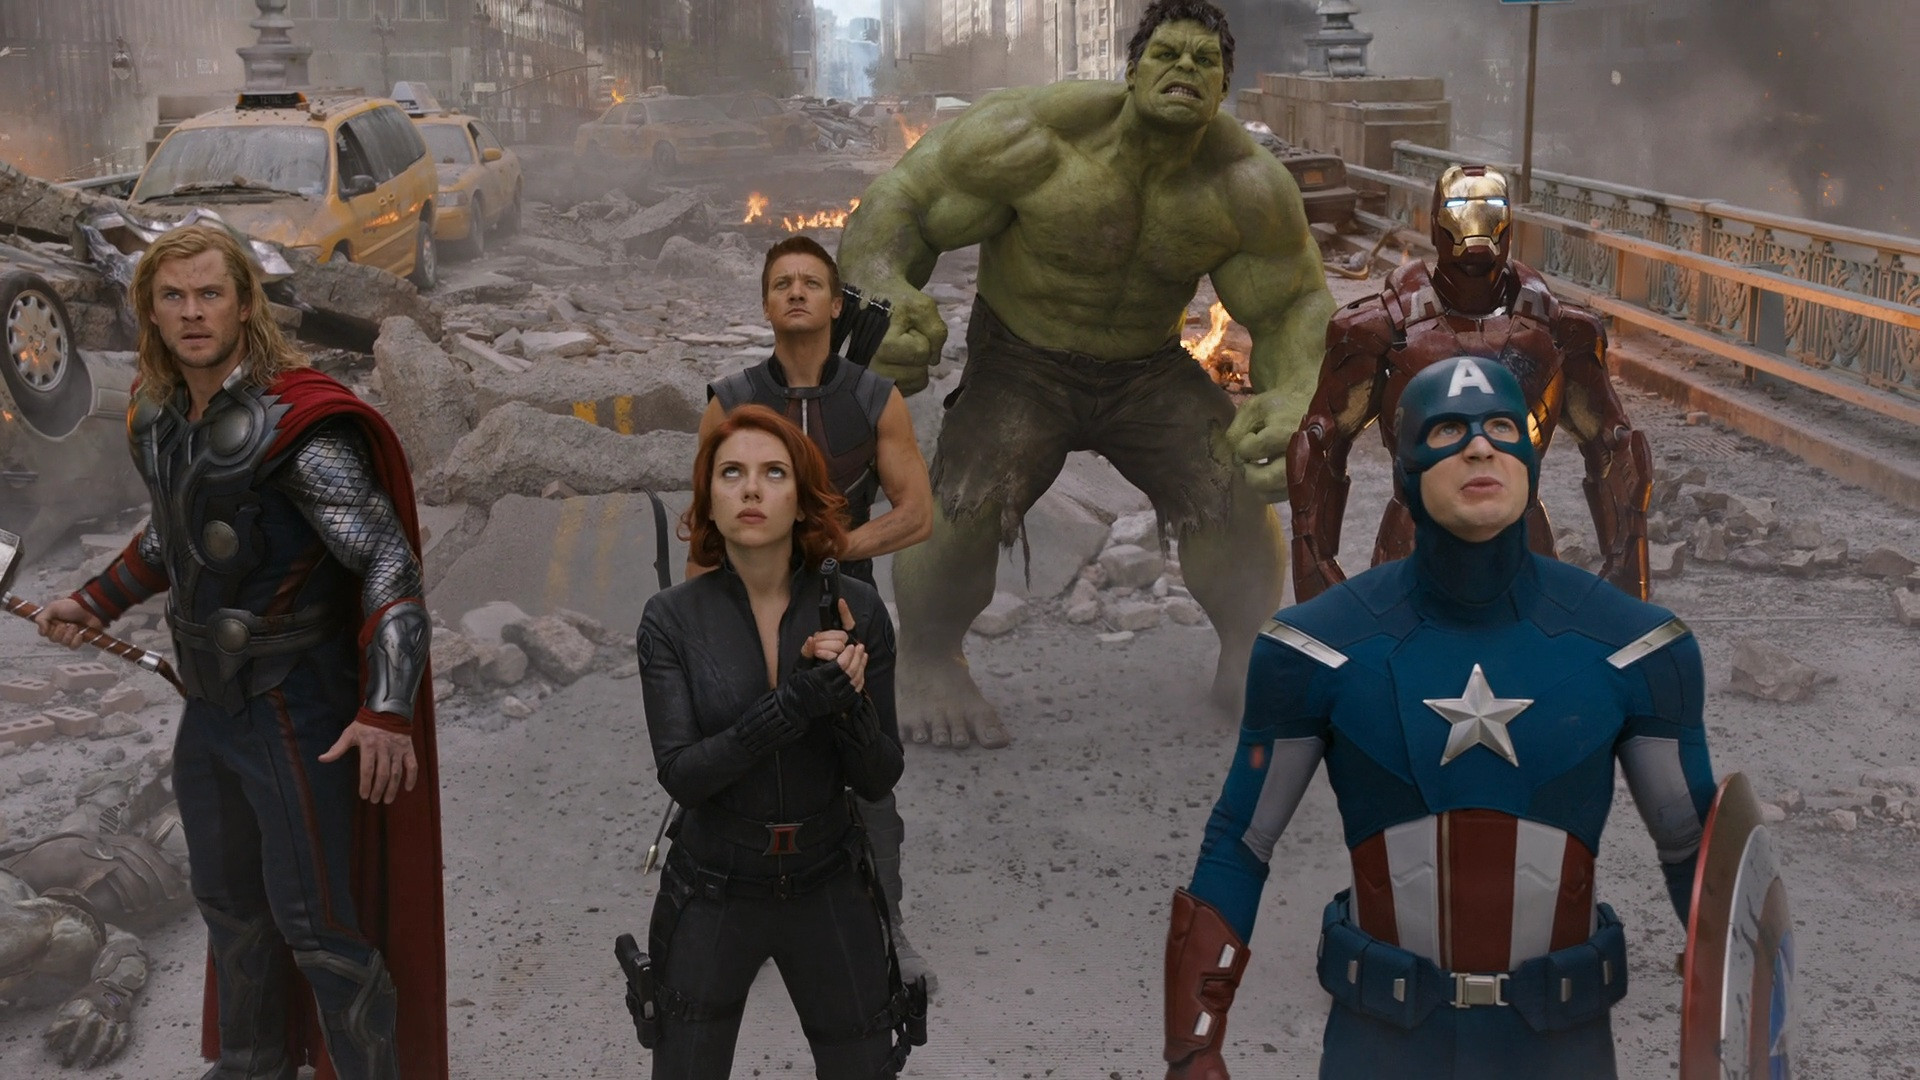 image - the avengers - emh | disney wiki | fandom poweredwikia